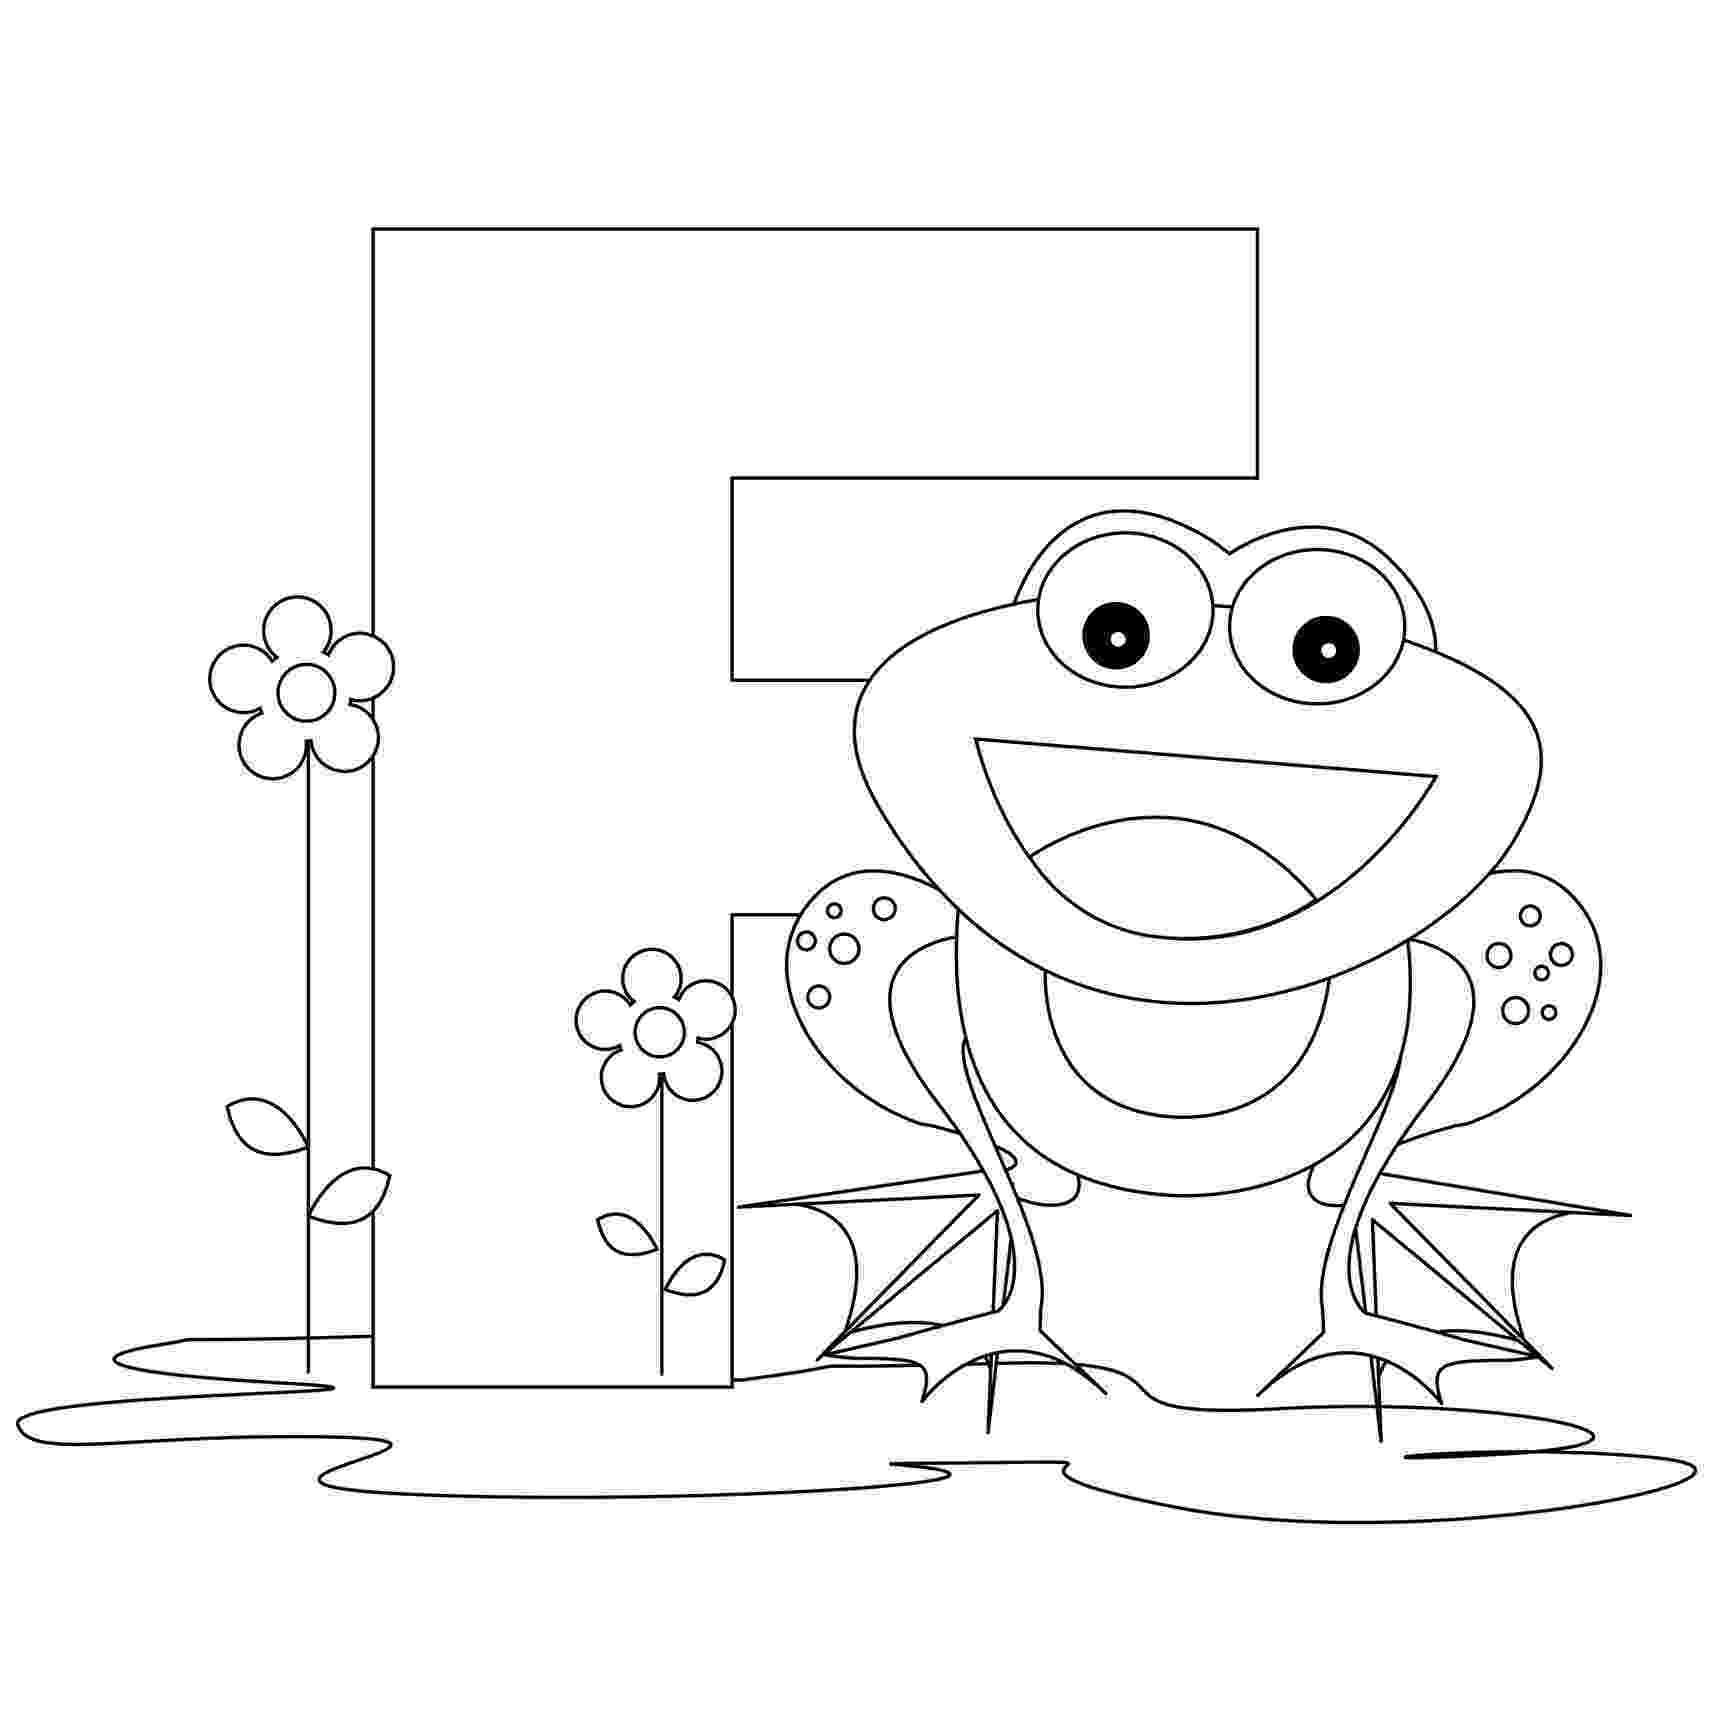 childrens colouring pages alphabet free printable alphabet coloring pages for kids best childrens alphabet colouring pages